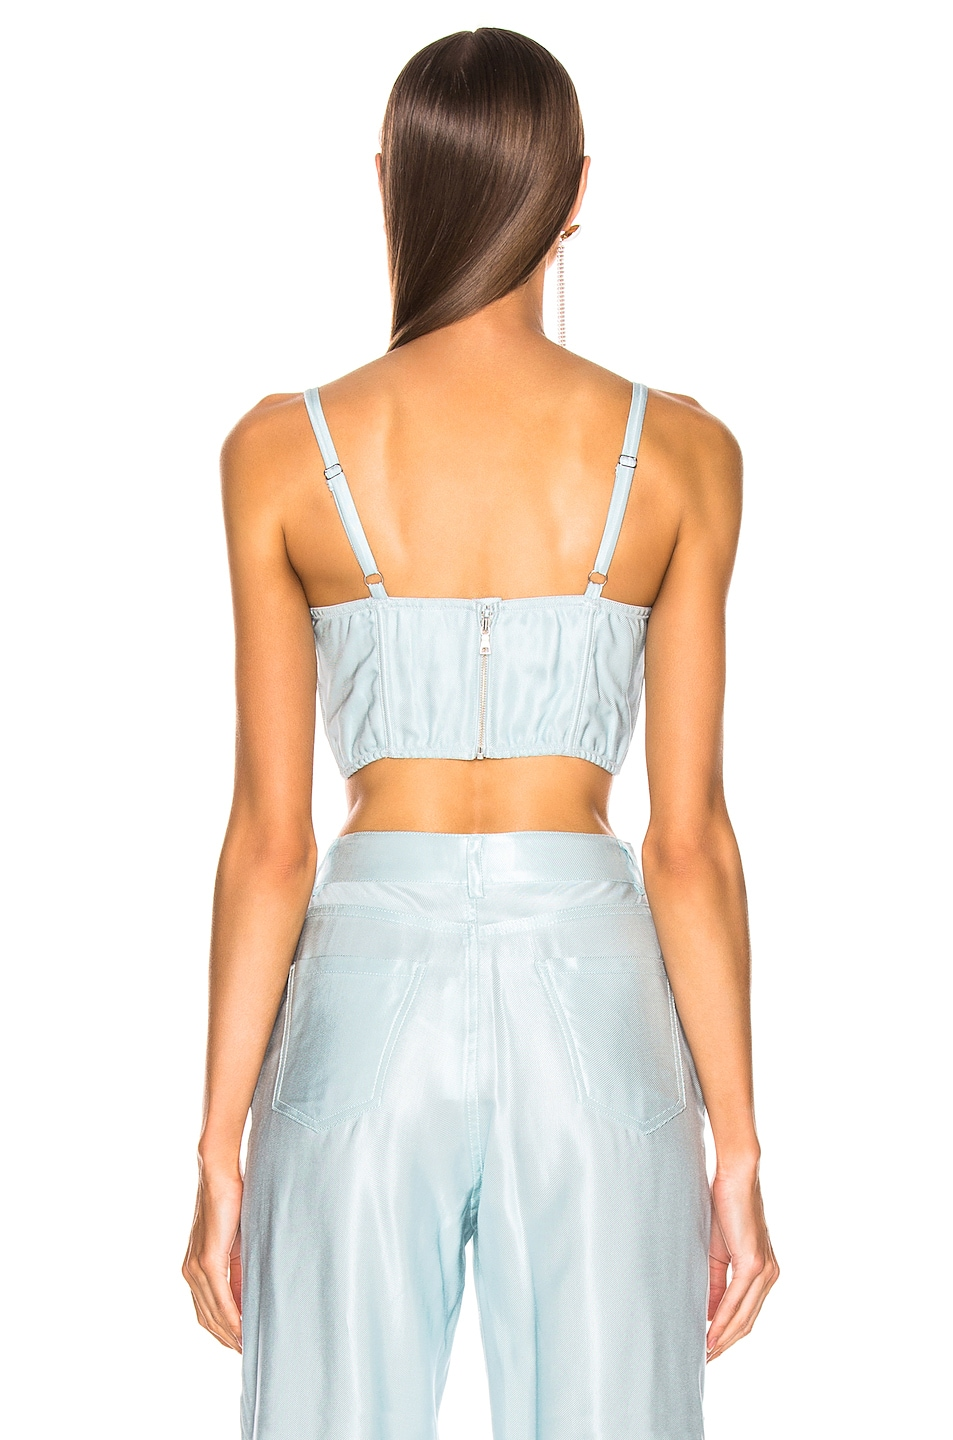 Image 3 of fleur du mal Twill Bustier Top in Whisper Mint